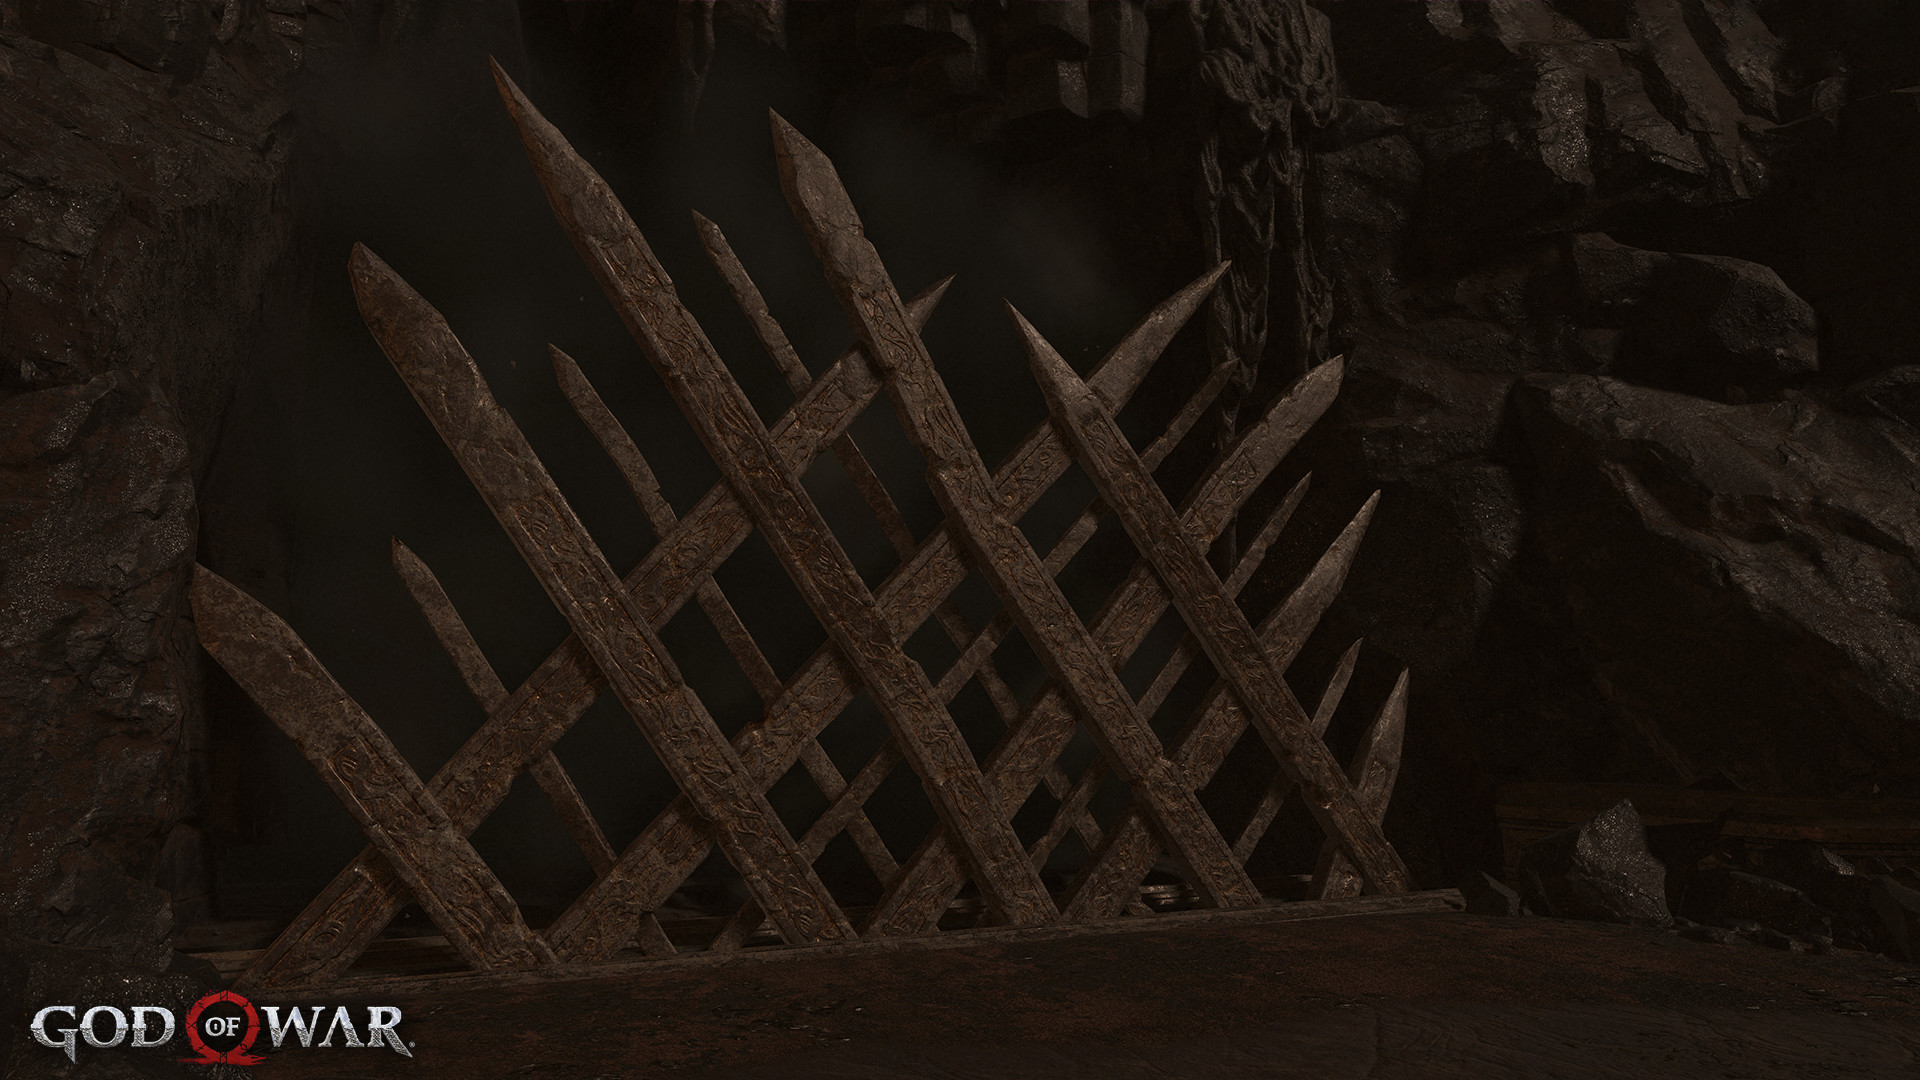 I modeled out the gate, sculpted in Zbrush, UV/bake, made the layered materials and finally placed them in-game.